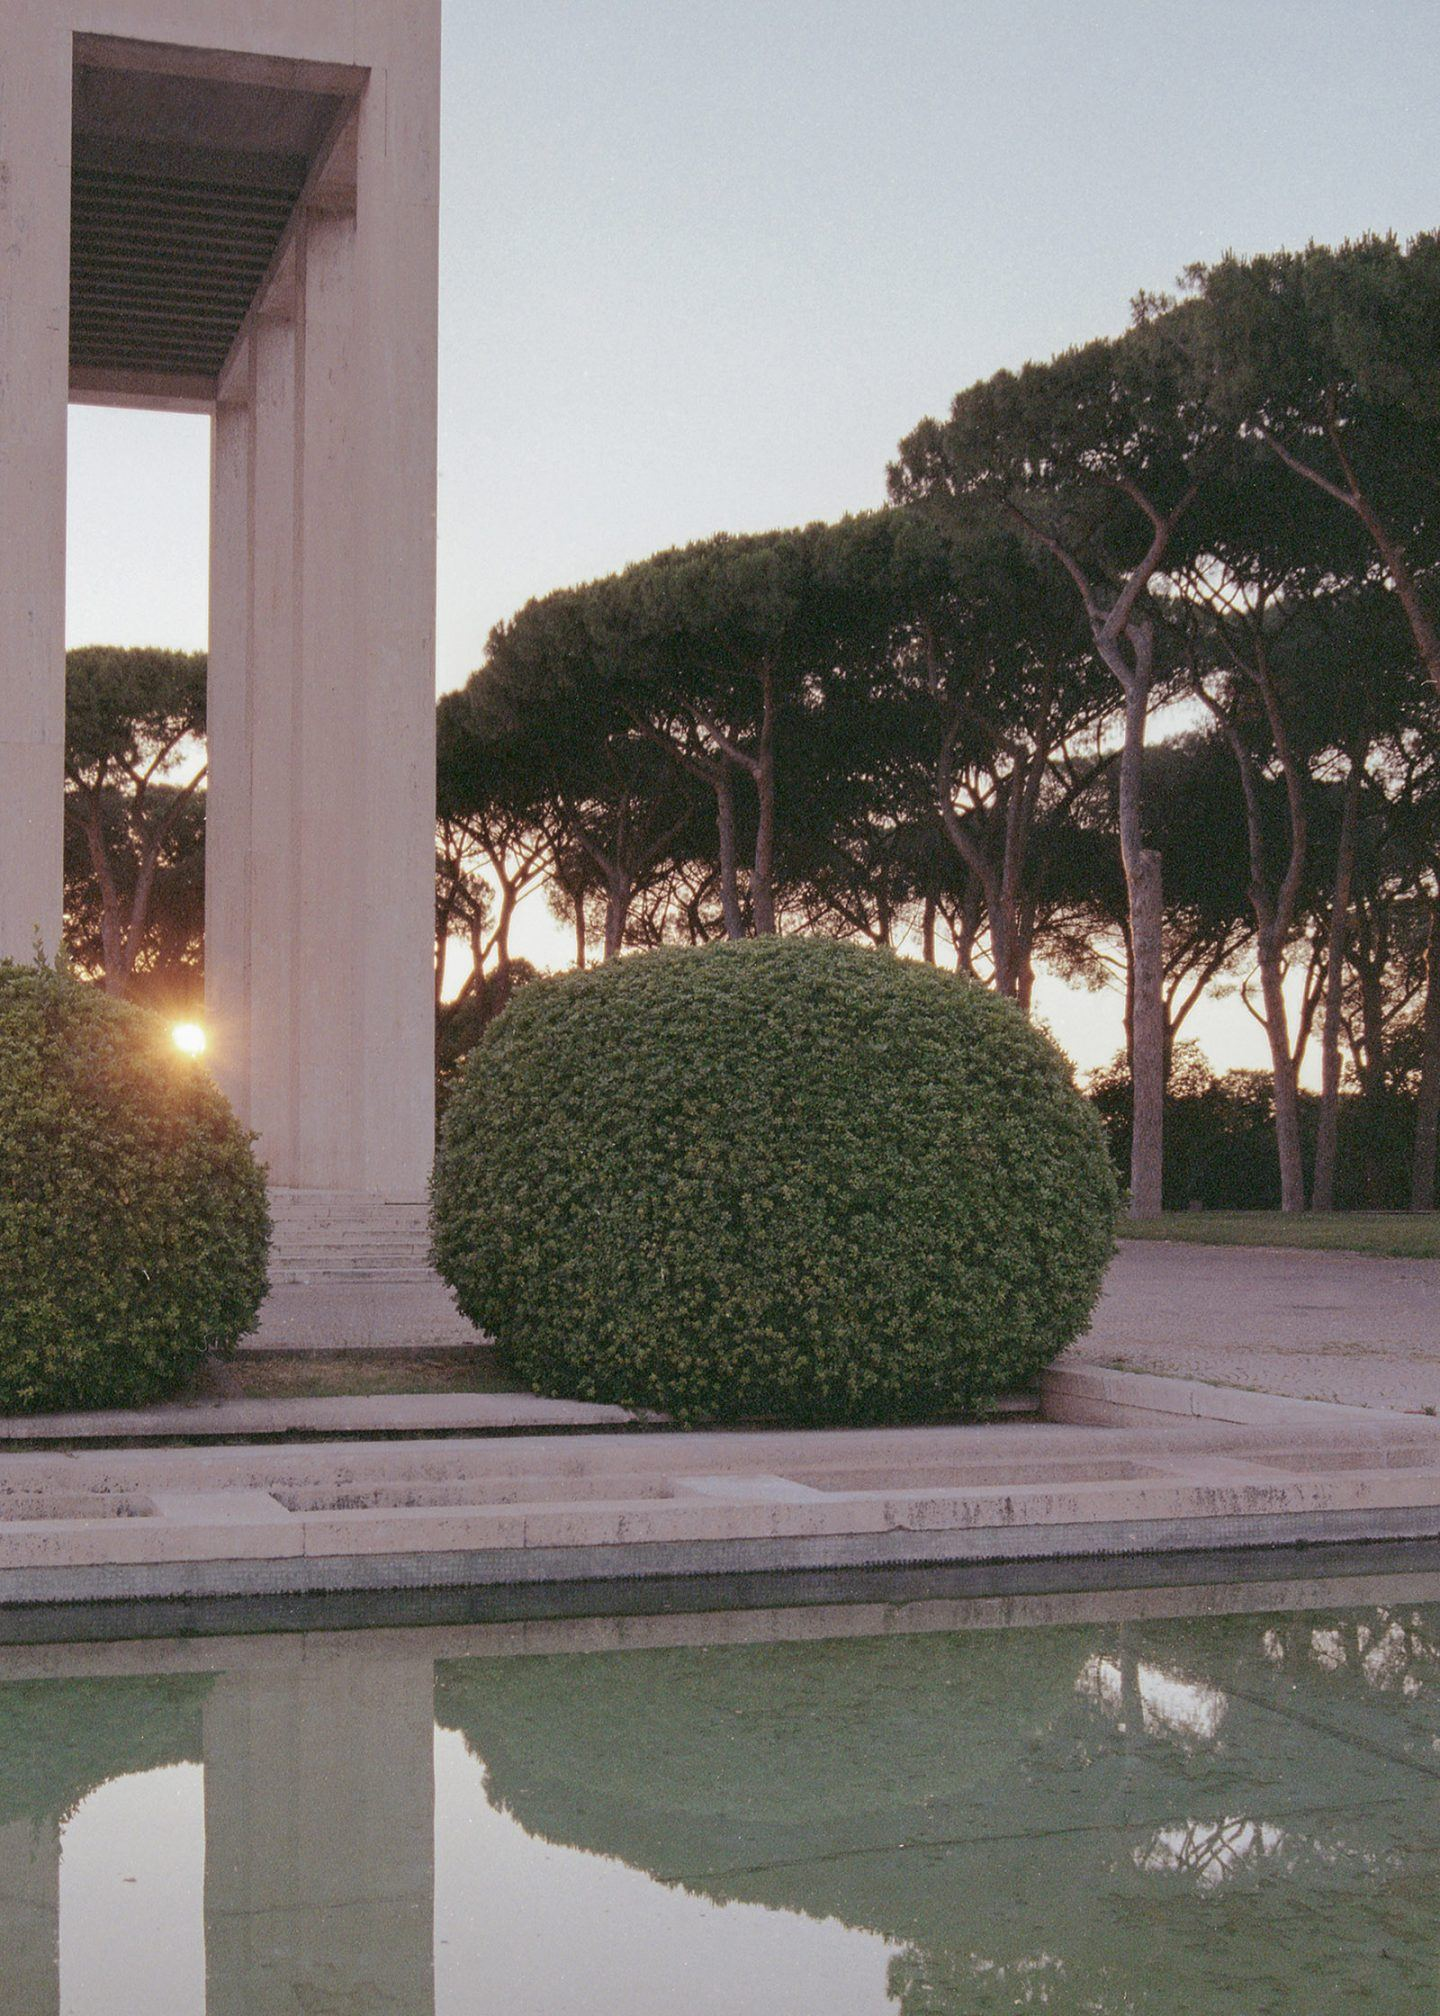 Another Rome_08